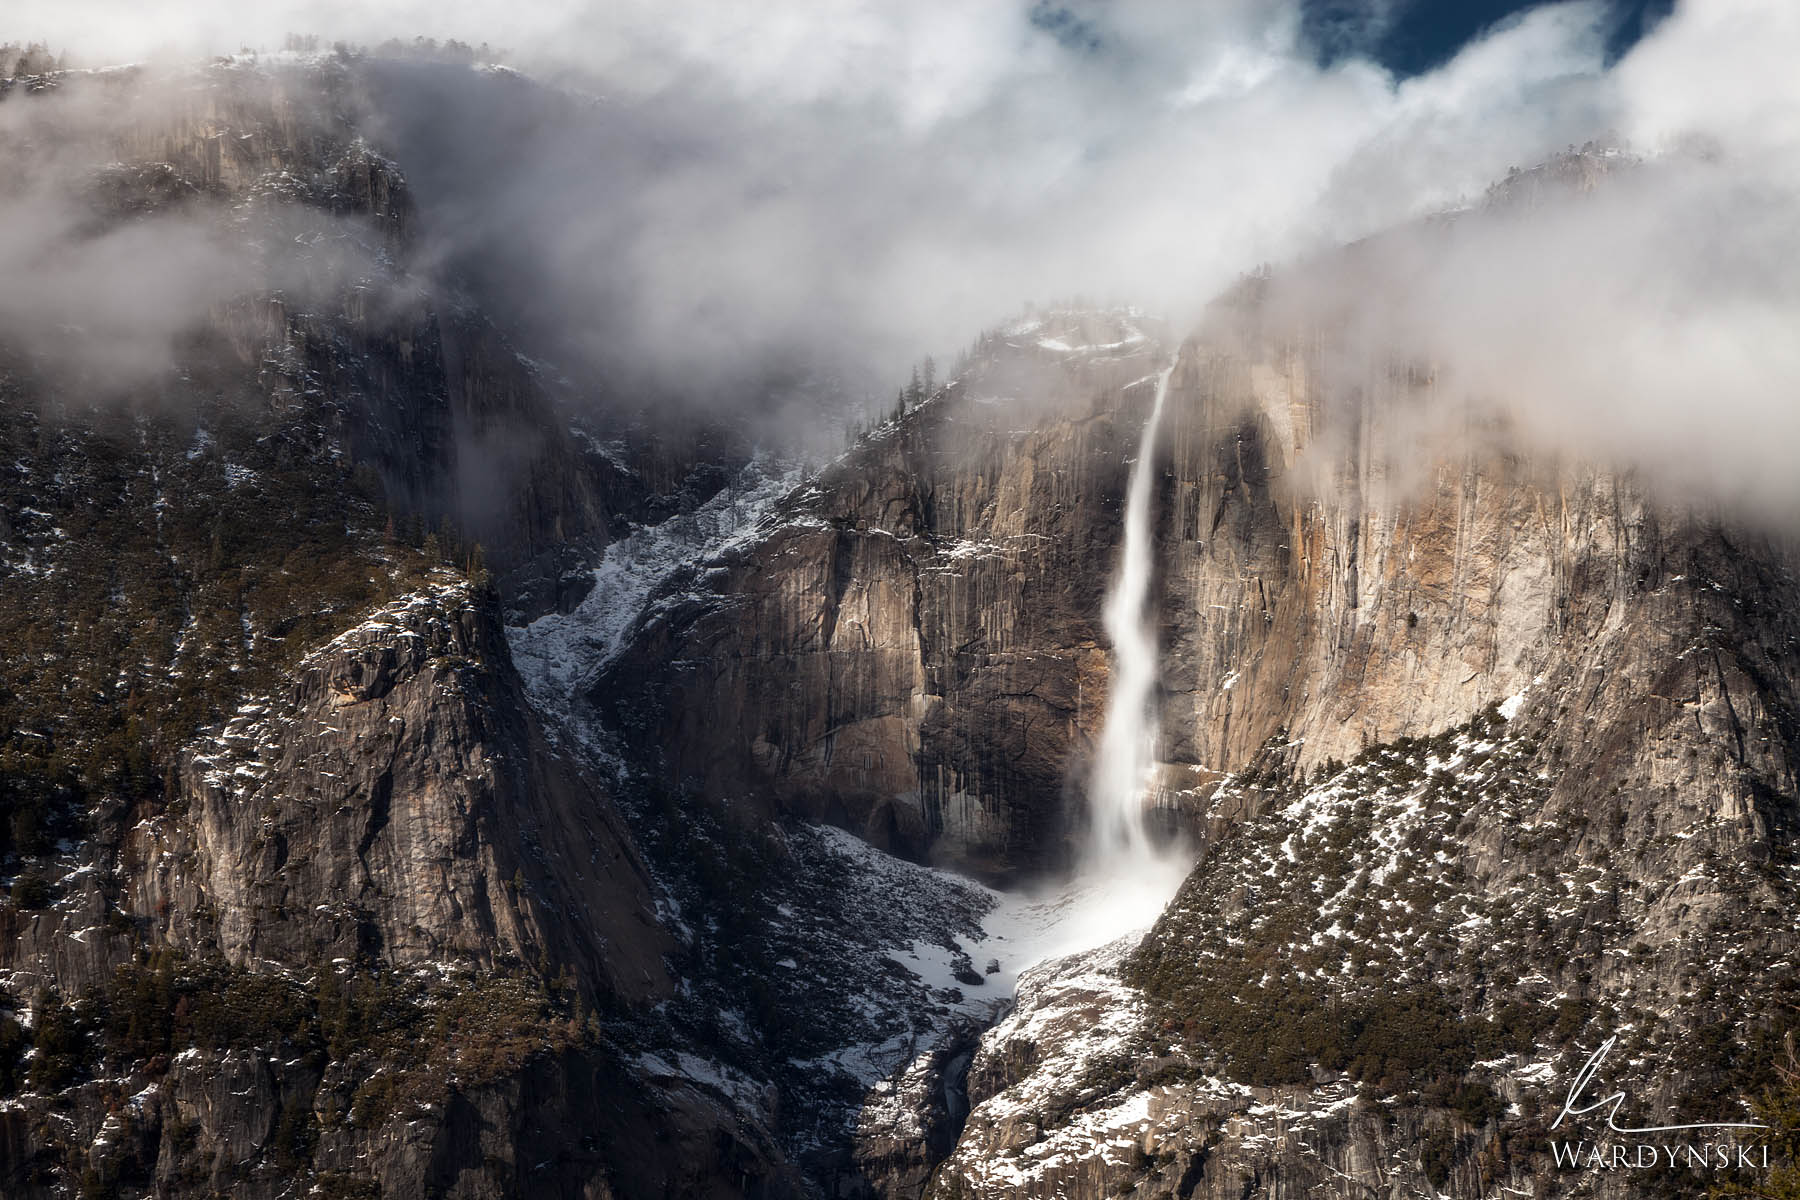 Fine Art Print | Limited Edition of 25  At 2,425 feet high, Yosemite Falls is the tallest waterfall in the continental US. The...